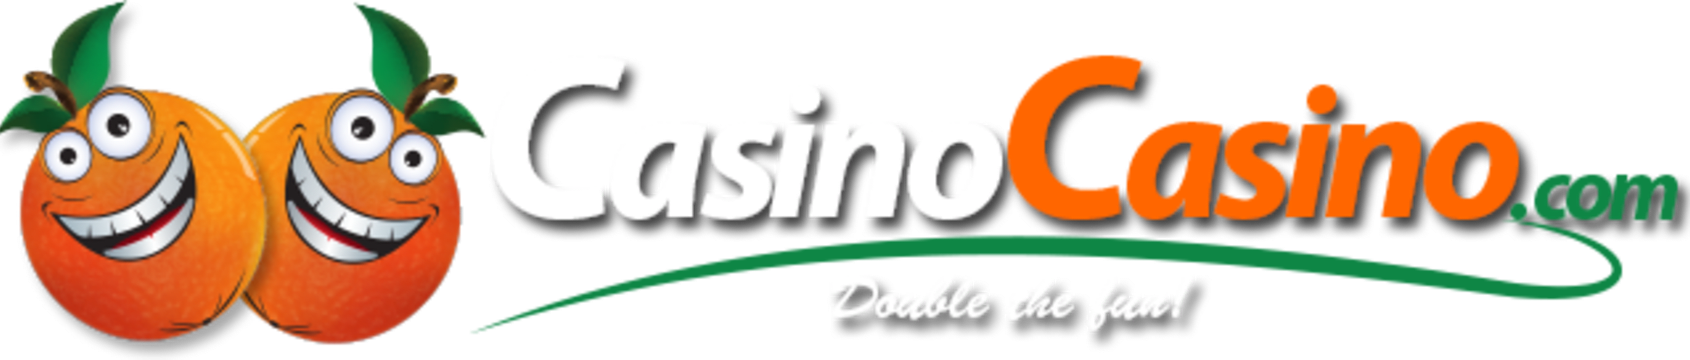 CasinoCasino